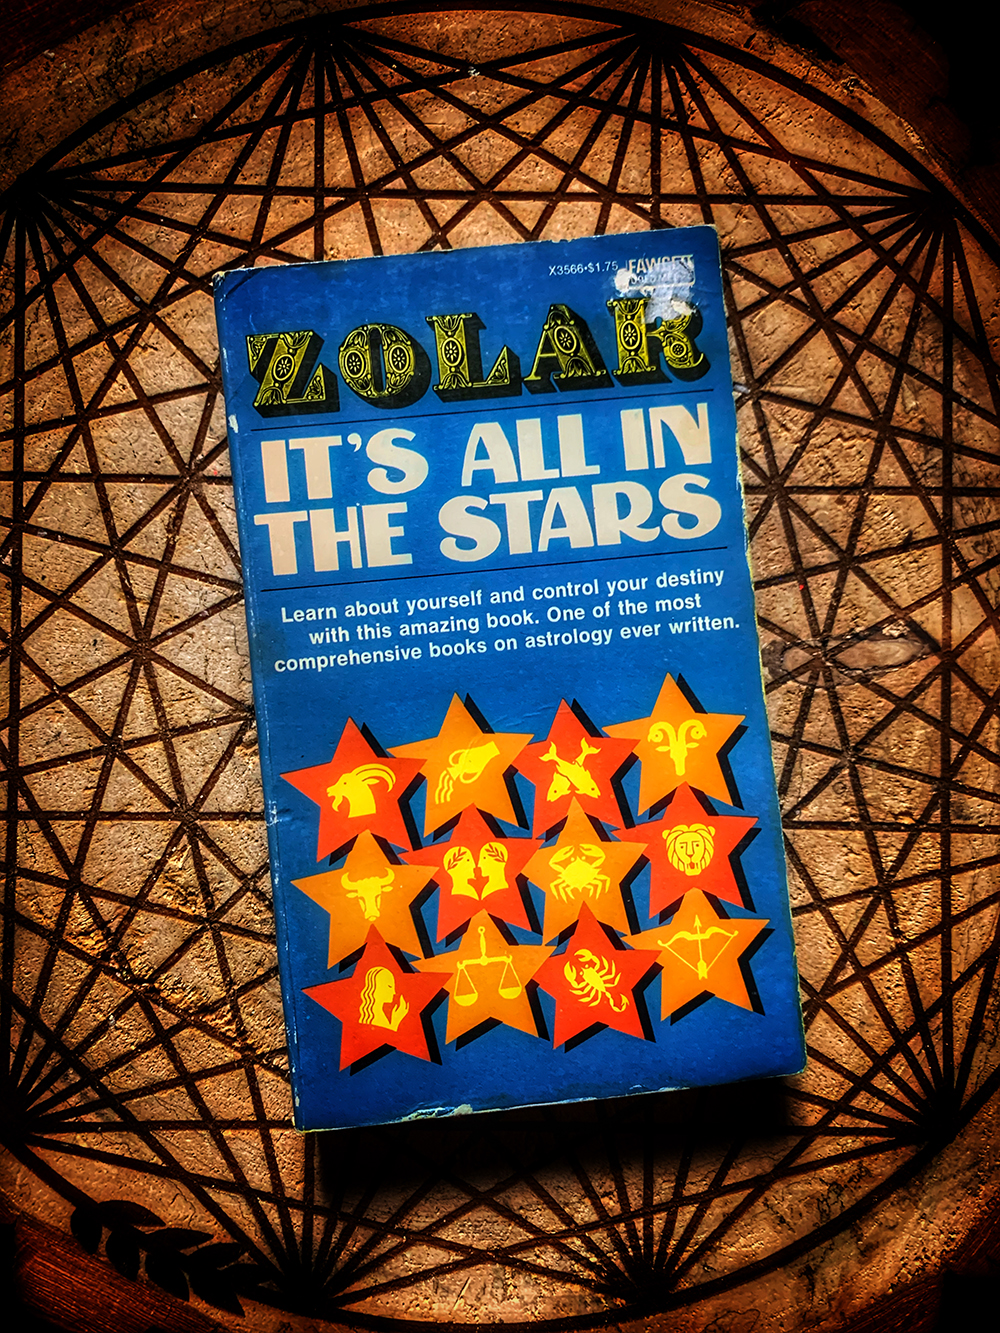 Zolar All In the stars